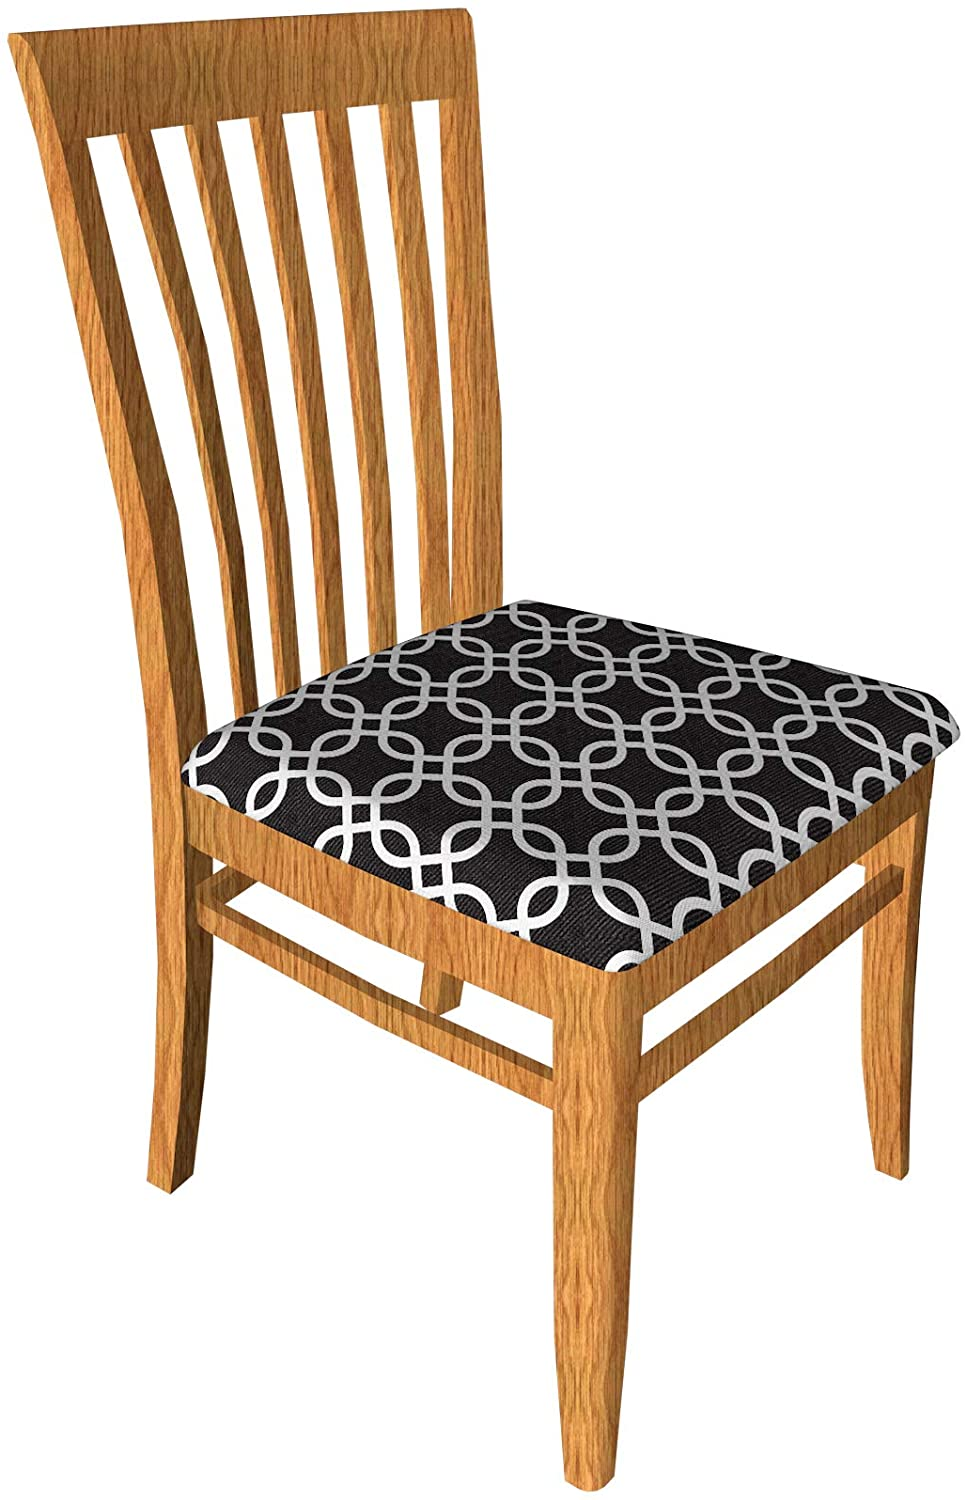 SheYang Stretch Spandex Jacquard Dining Room Chair Seat Covers, Removable Washable Anti-Dust Dinning Upholstered Chair Seat Cushion Slipcovers (Black 03, 4)